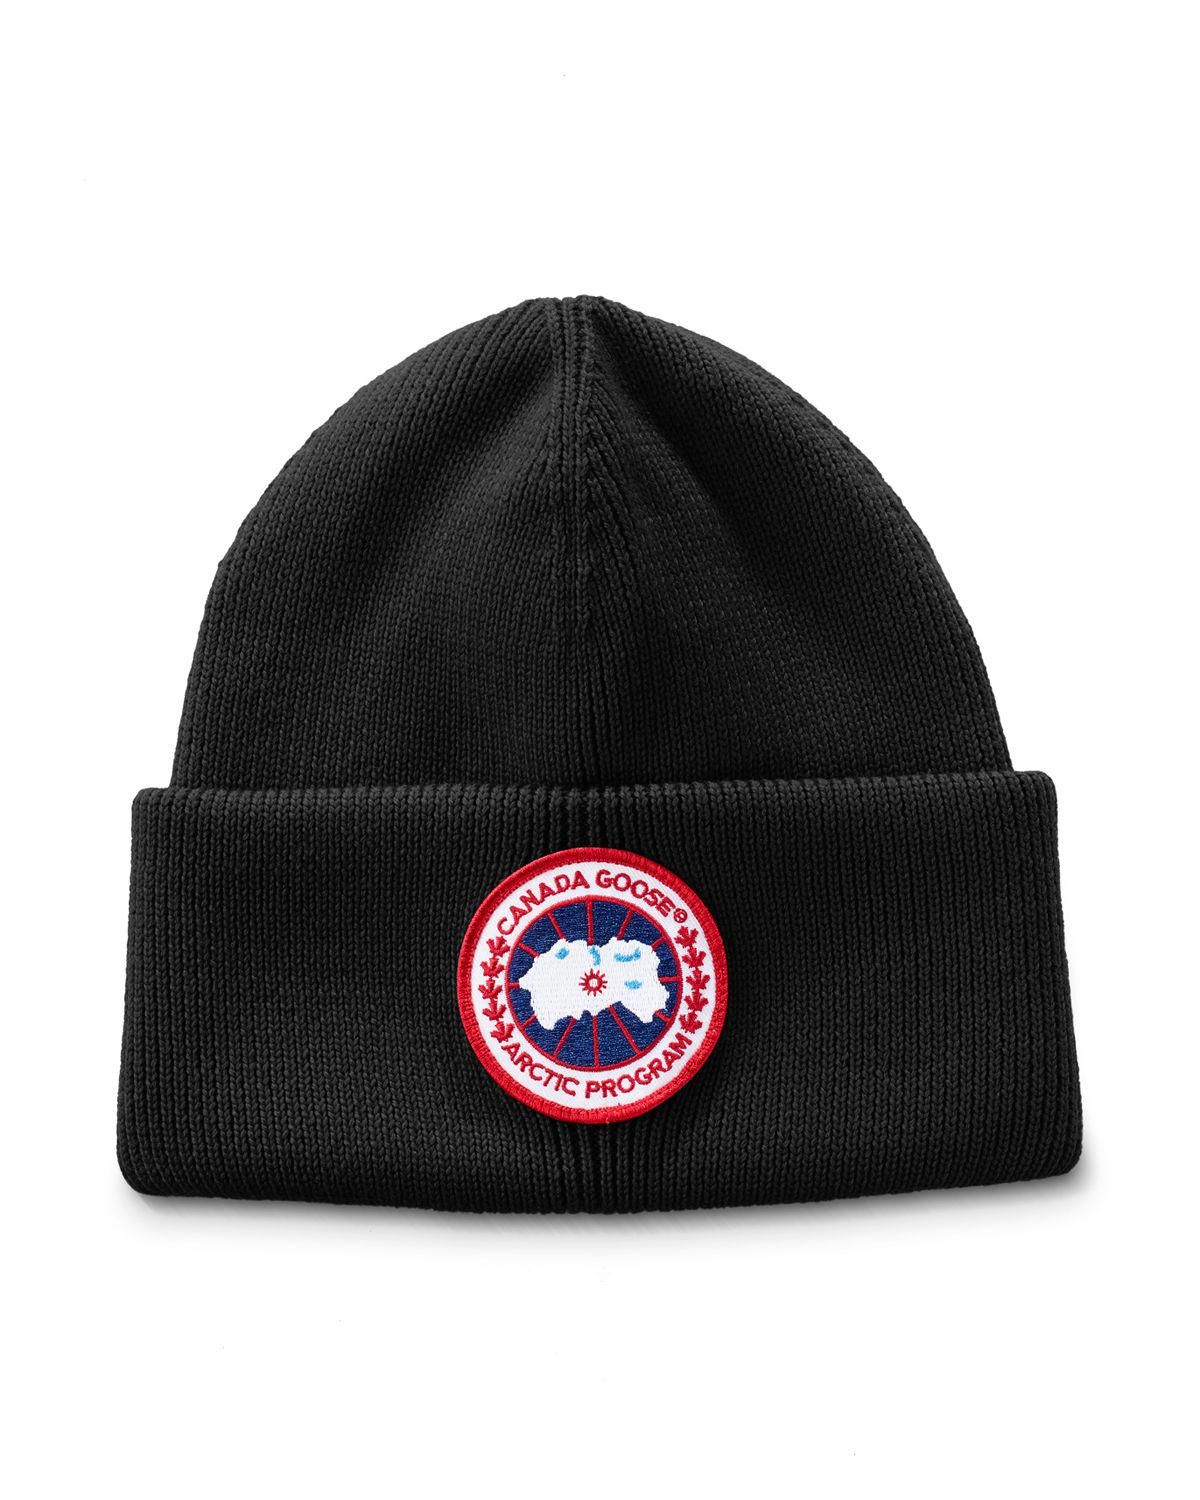 a7e695b5bcf Lyst - Canada Goose Arctic Disc Toque in Black for Men - Save 62%